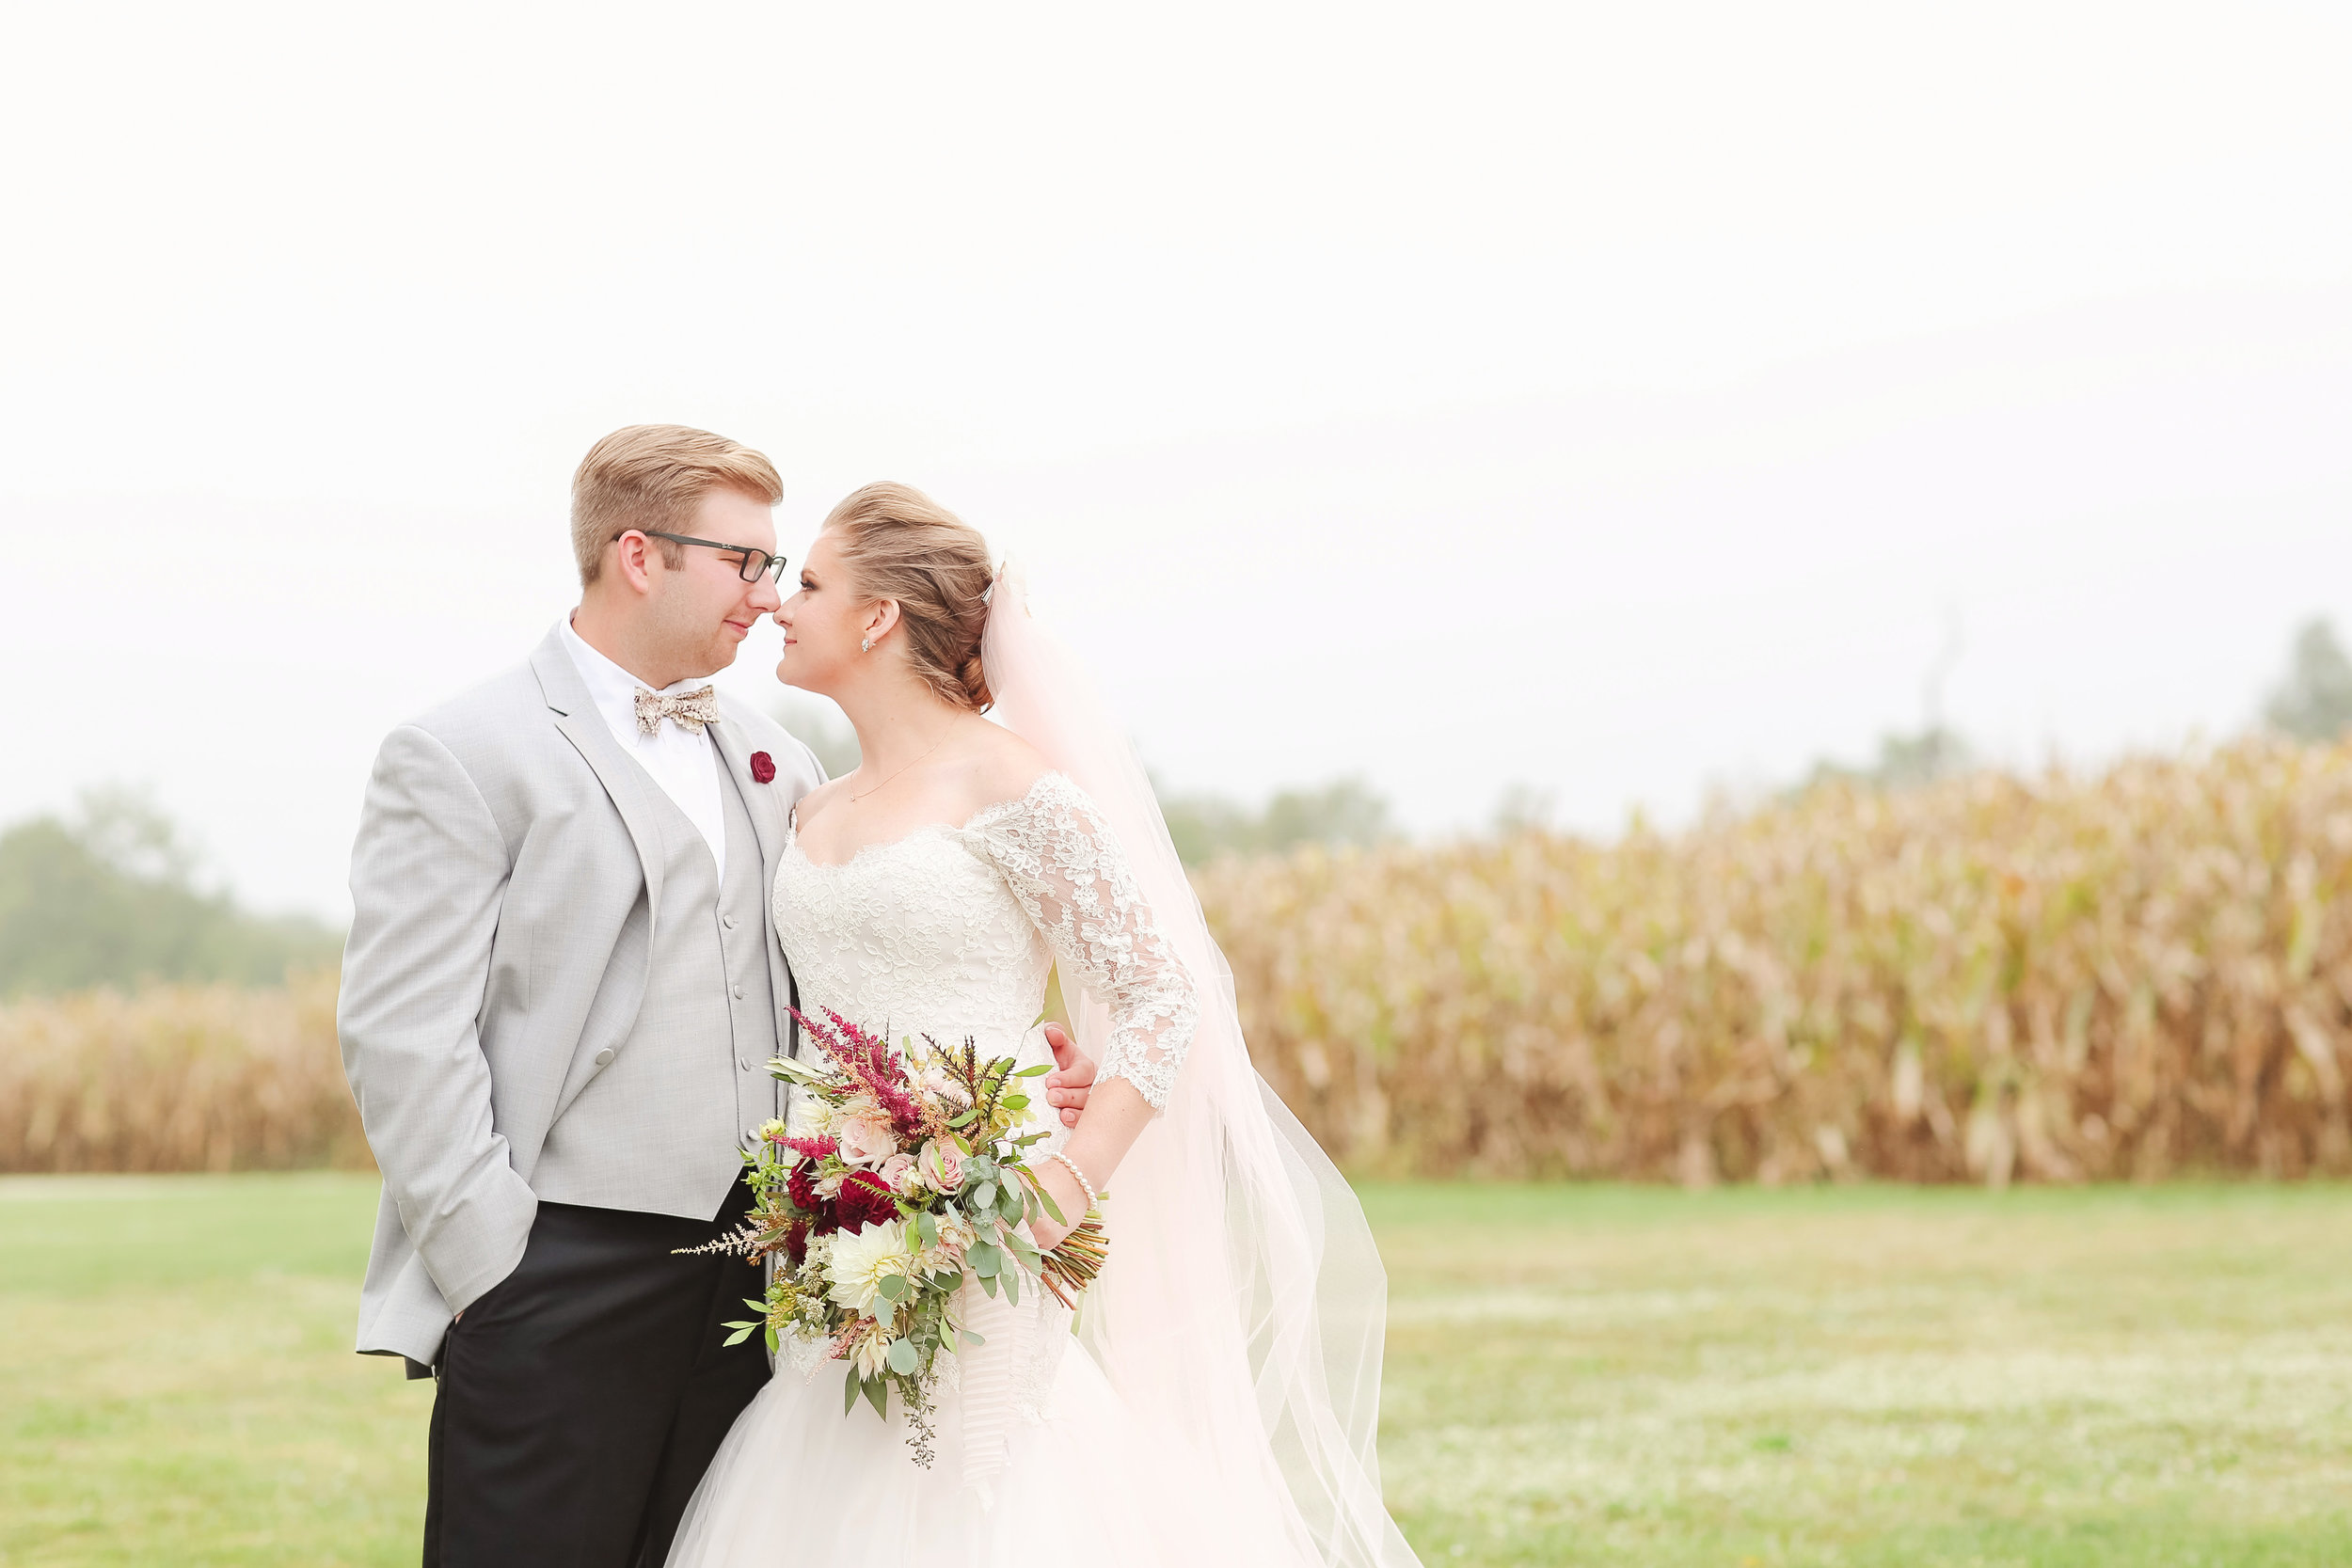 Wedding October 2016, Private Residence, Purcellville, Virginia     Danielle & Bryan   A chic Virginia wedding at a family home with vintage details, hand crafted furniture, and touches of rose gold.  See more in  Washingtonian Bride & Groom.